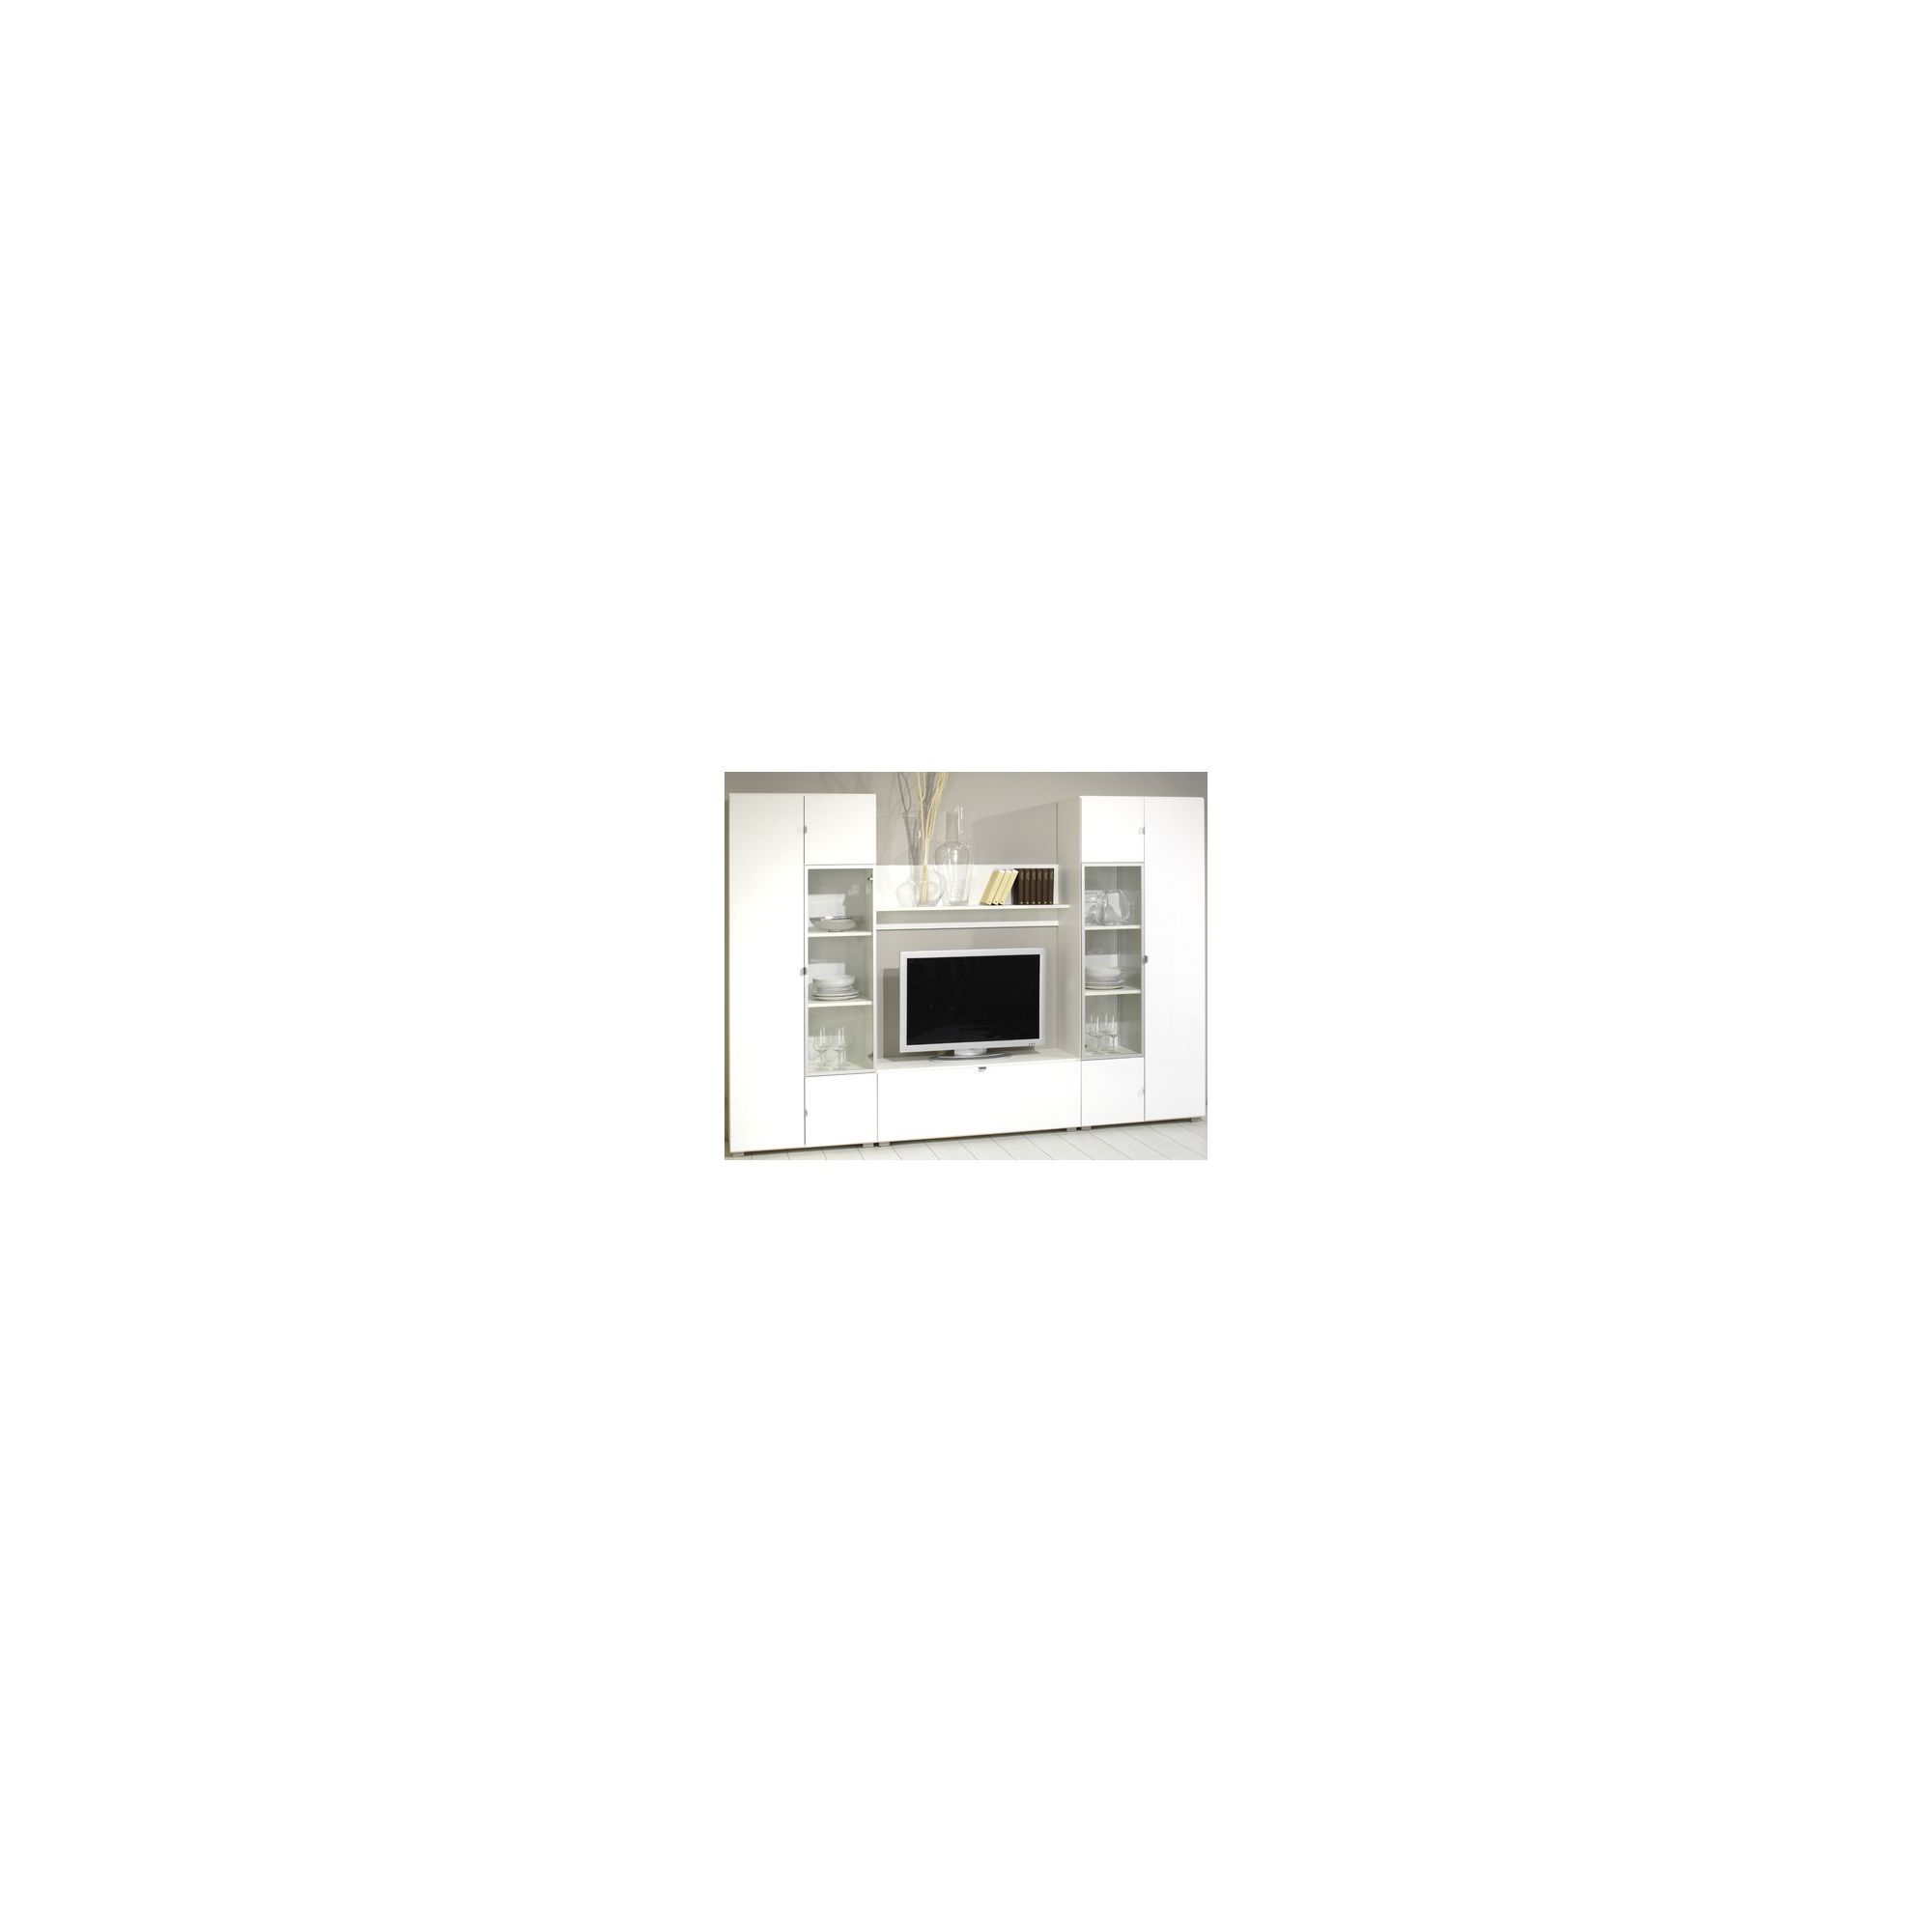 Bush Combination Wall Unit with Doors / Flaps - White Gloss at Tesco Direct